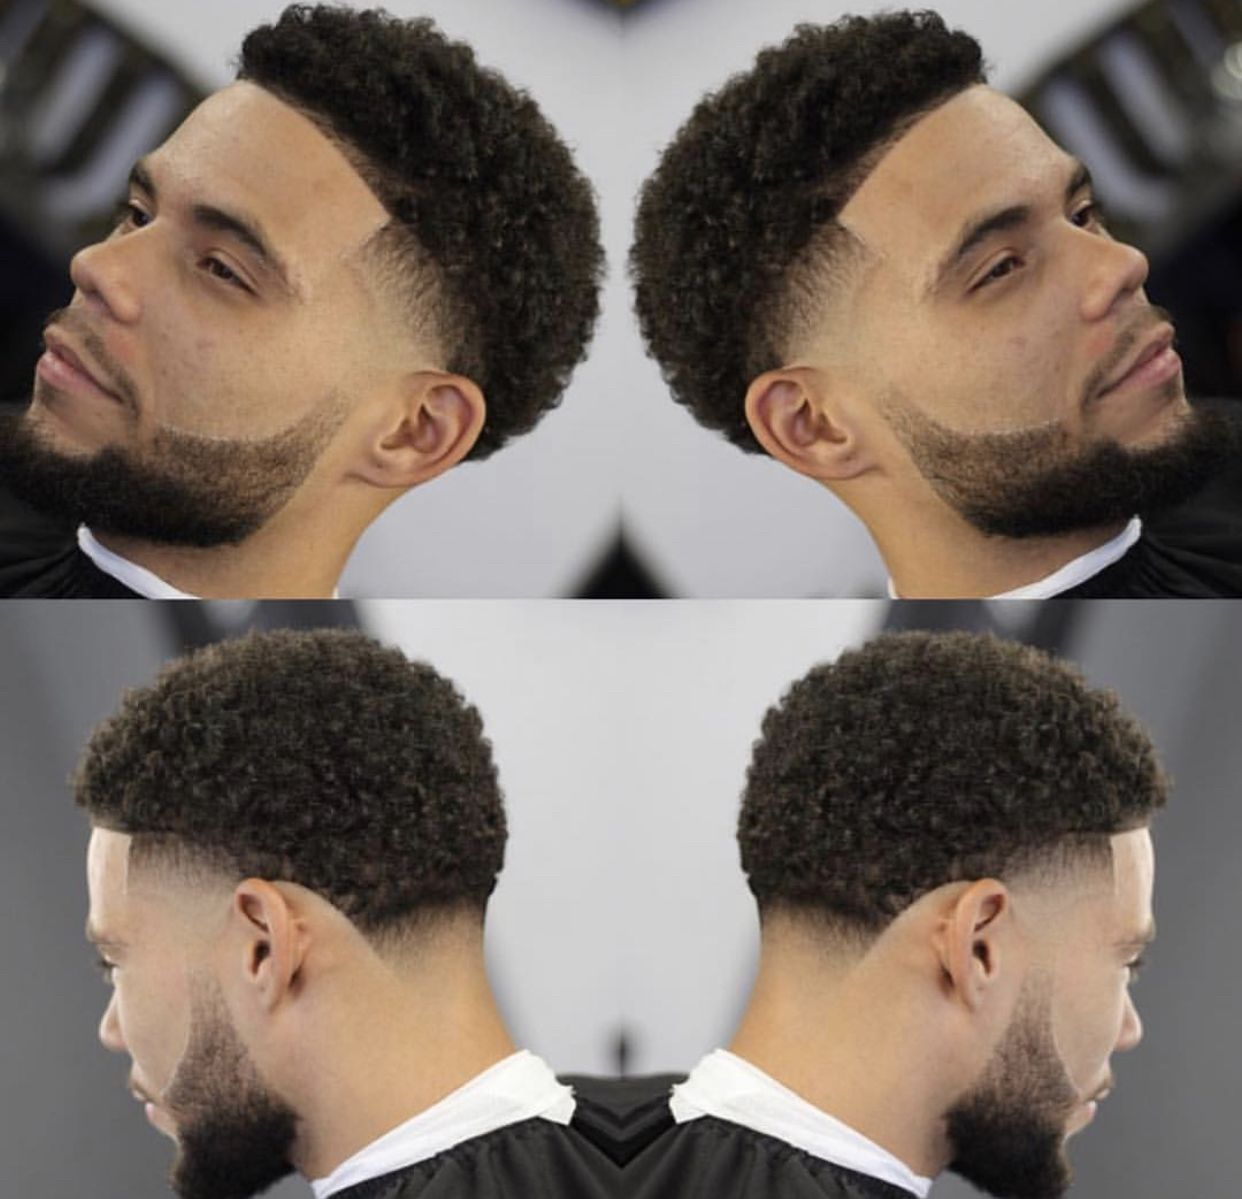 27 Fade Haircut Styles For 2020 Every Type Of Fade You Can Try In 2020 Mens Haircuts Fade High Fade Haircut Low Fade Haircut